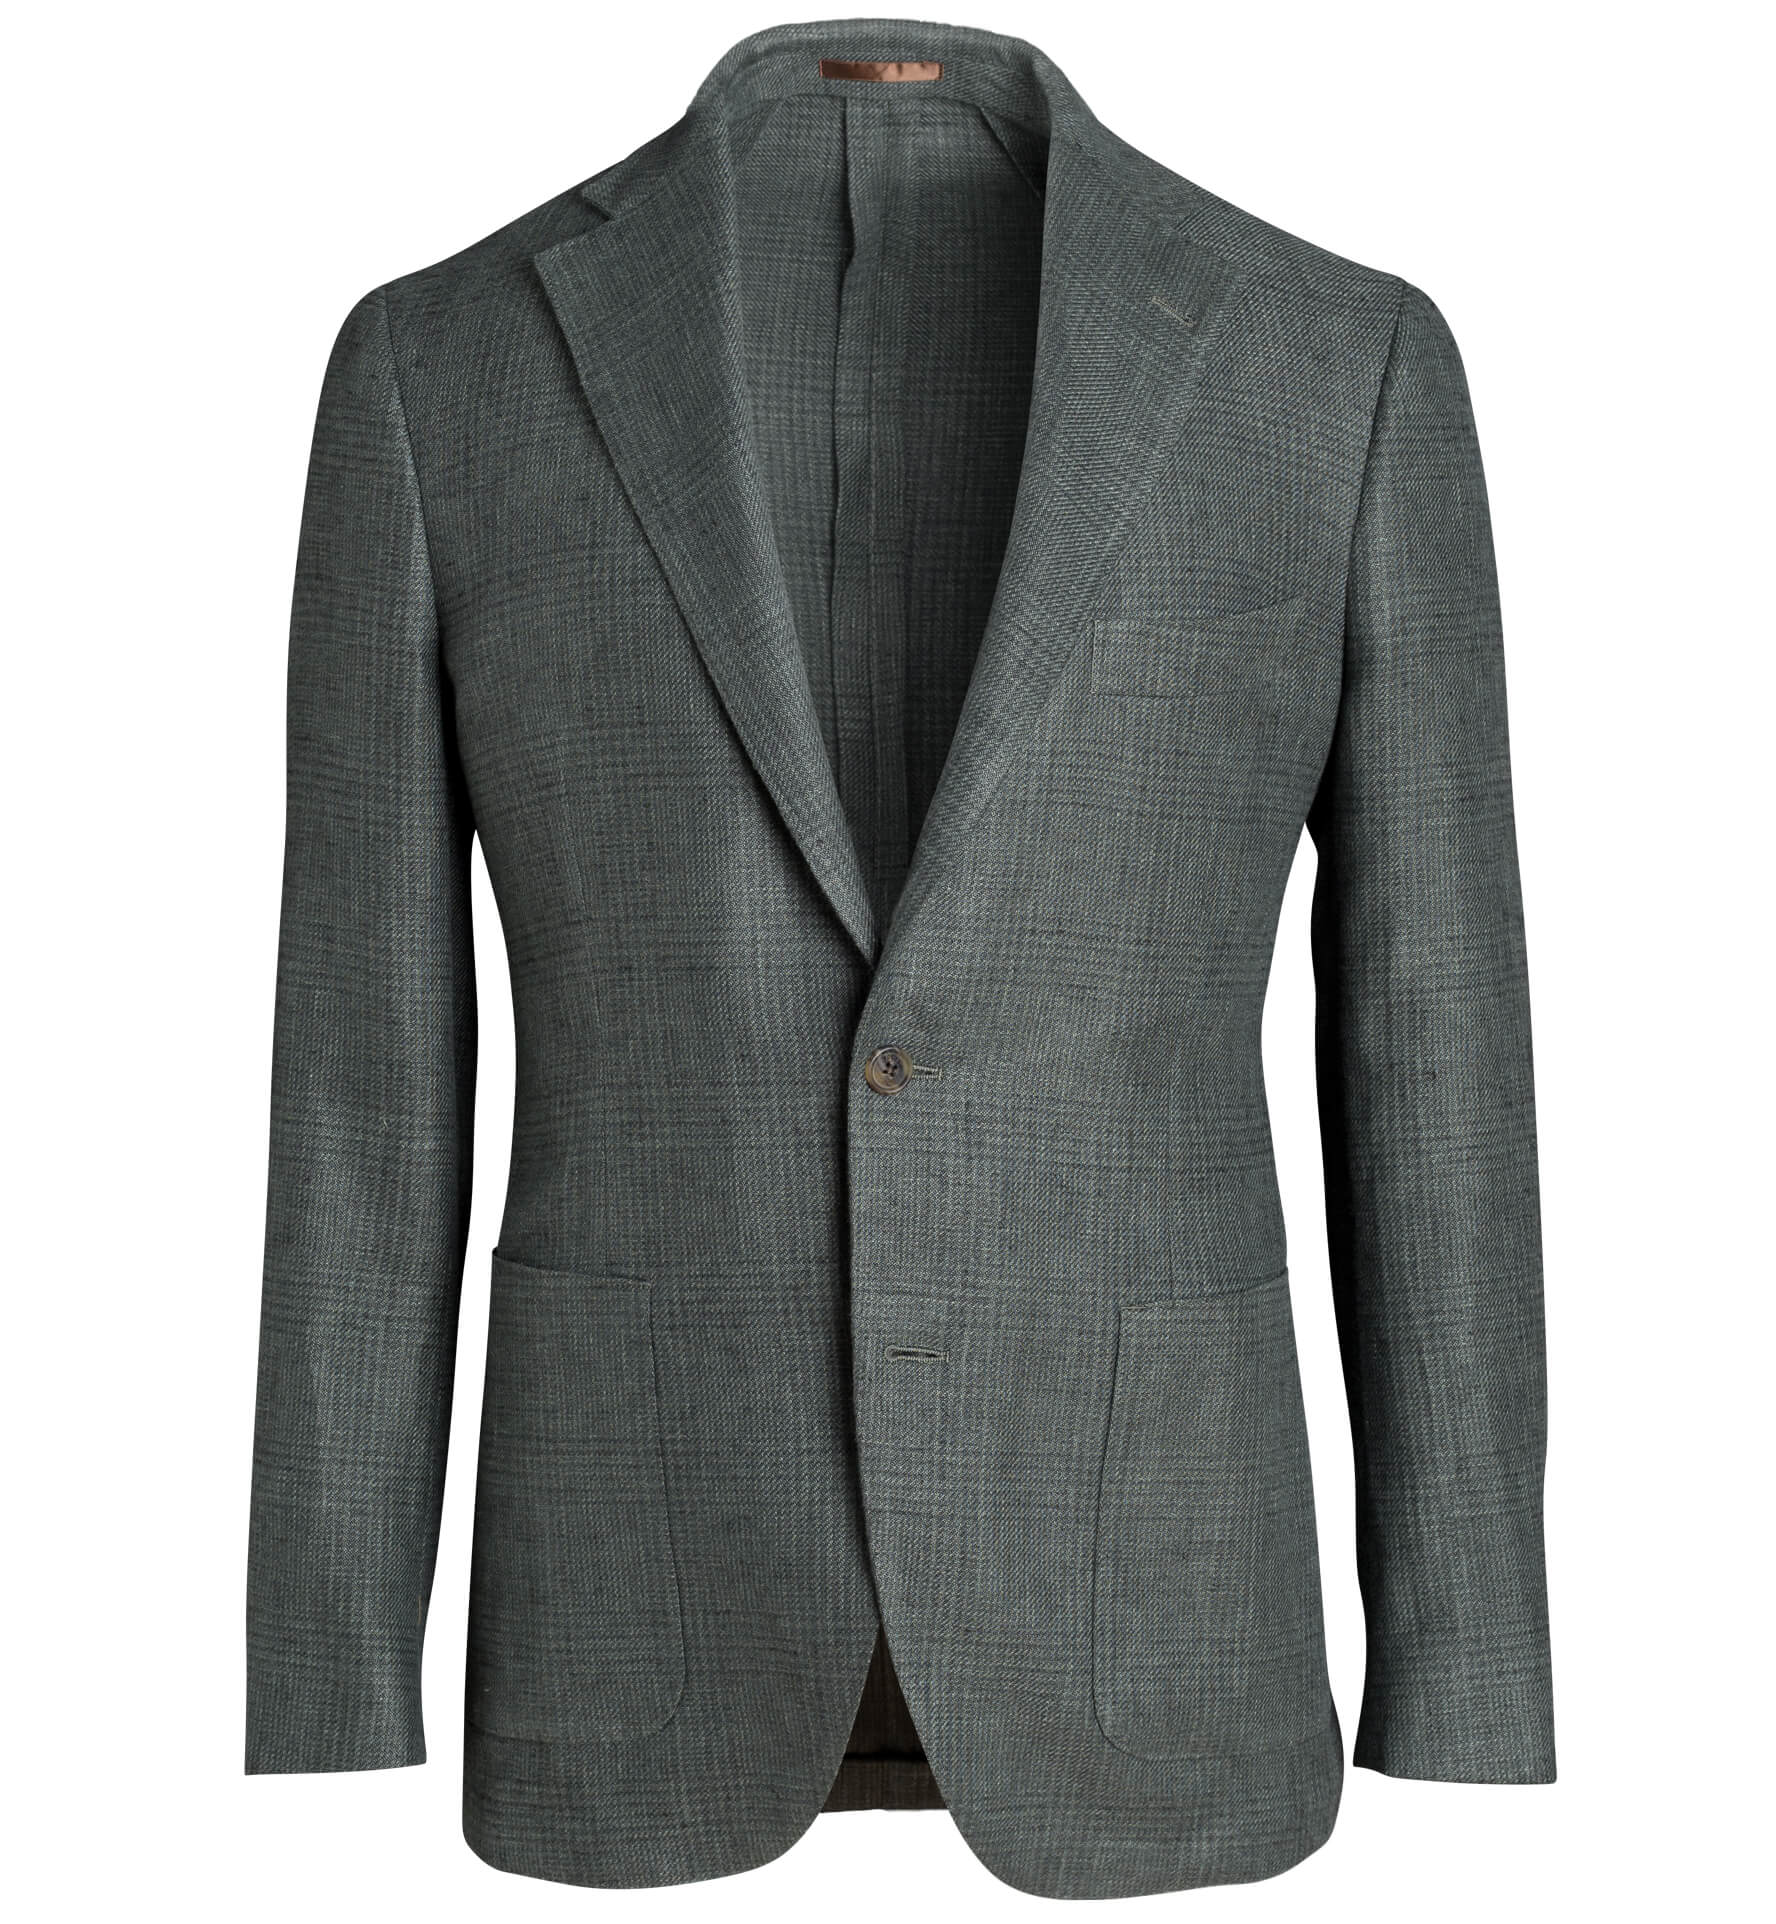 Zoom Image of Bedford Faded Green Glen Plaid Linen and Wool Jacket